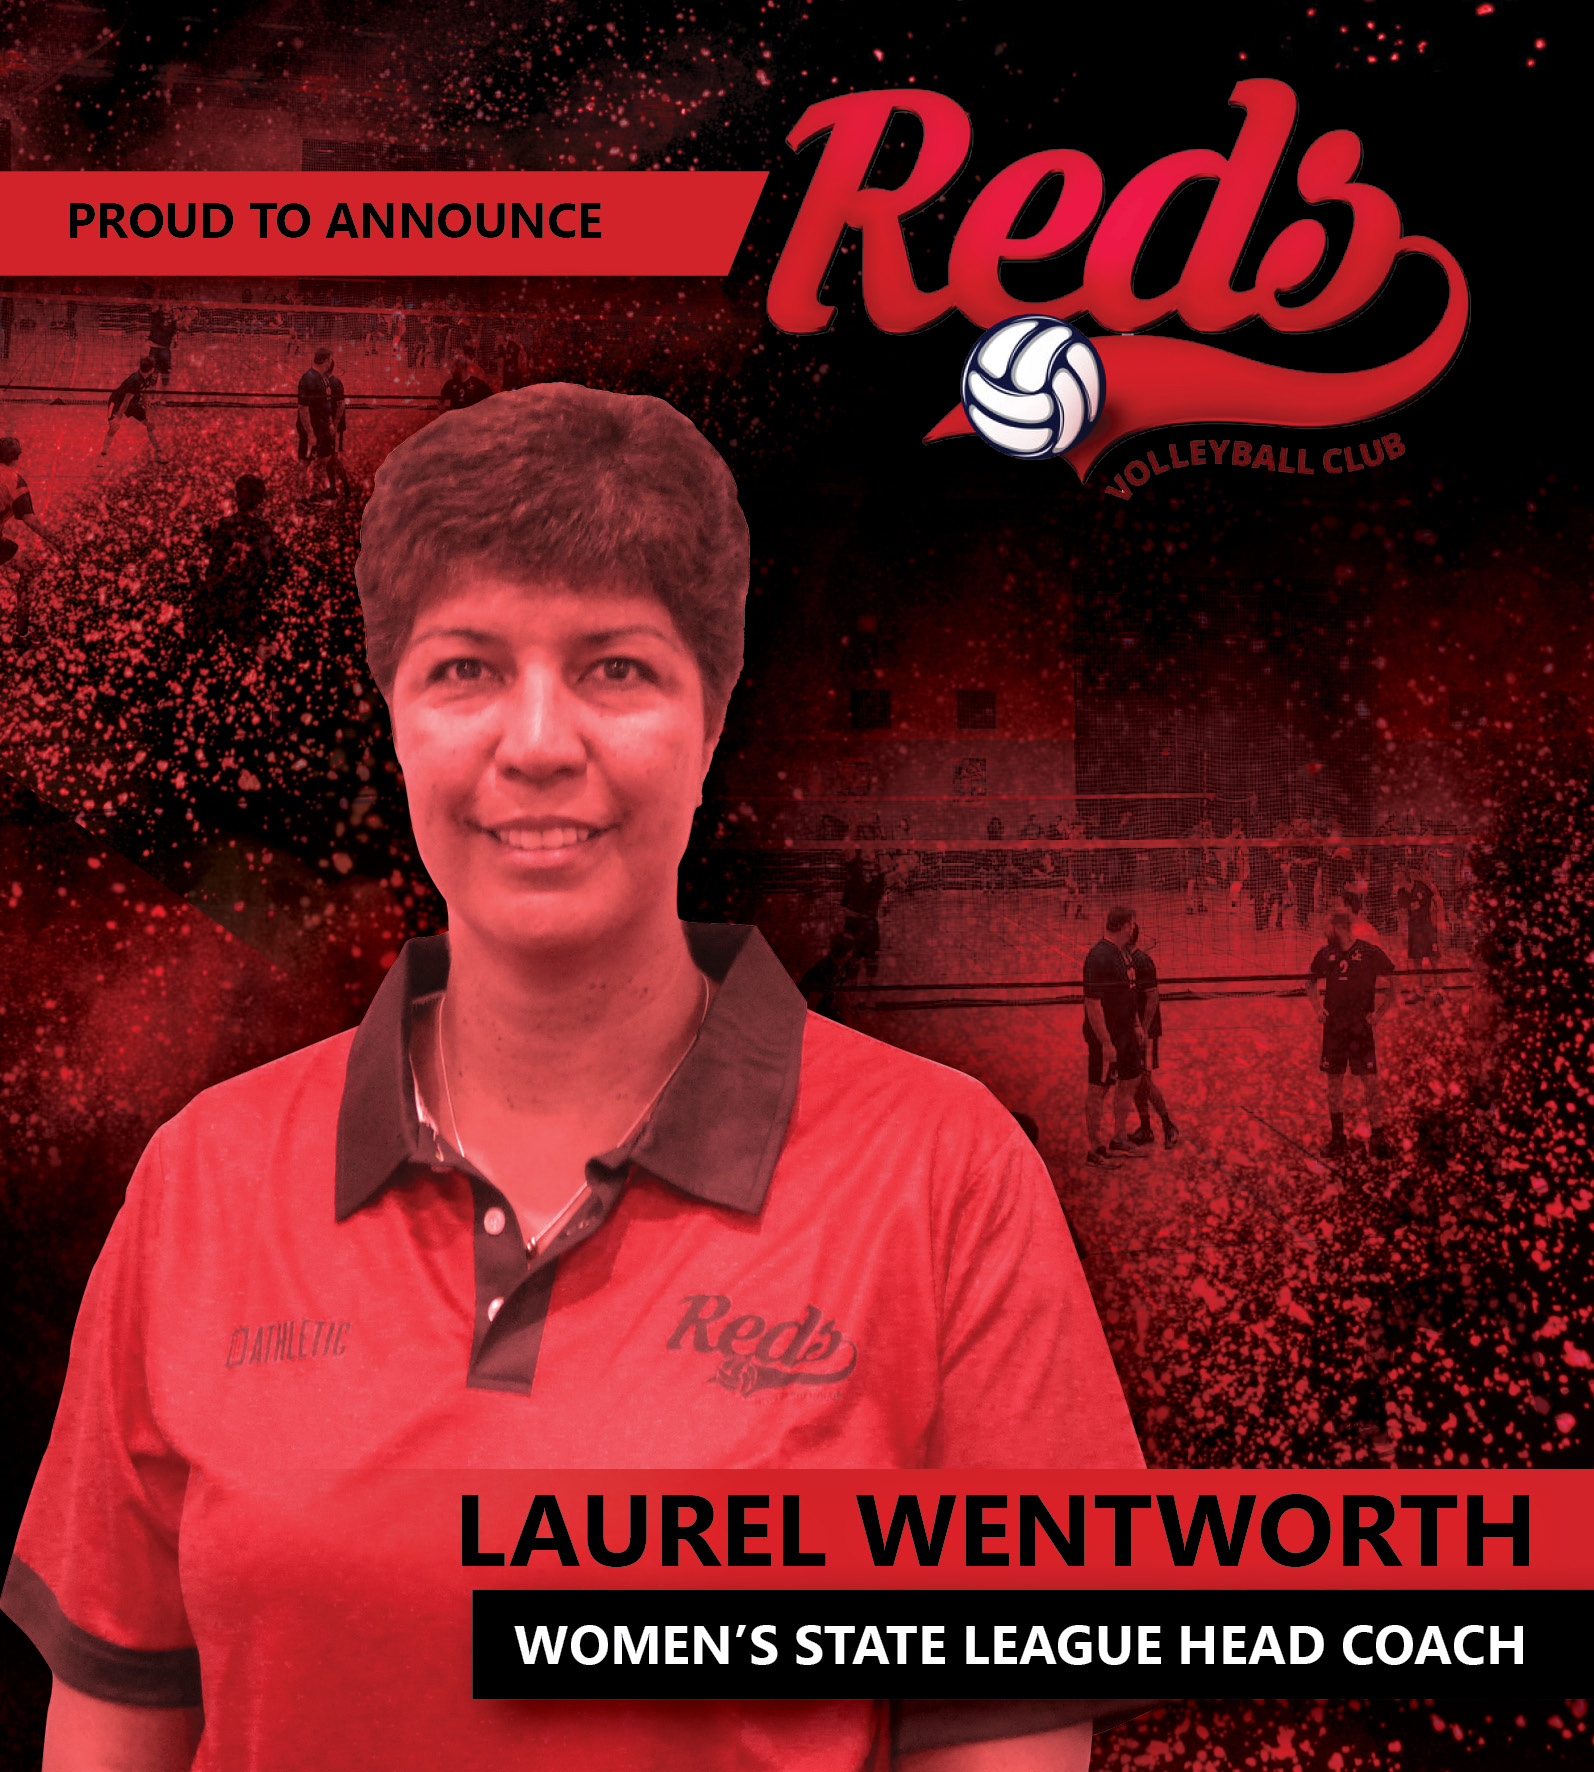 Laurel Wentworth - Women's State League Head Coach